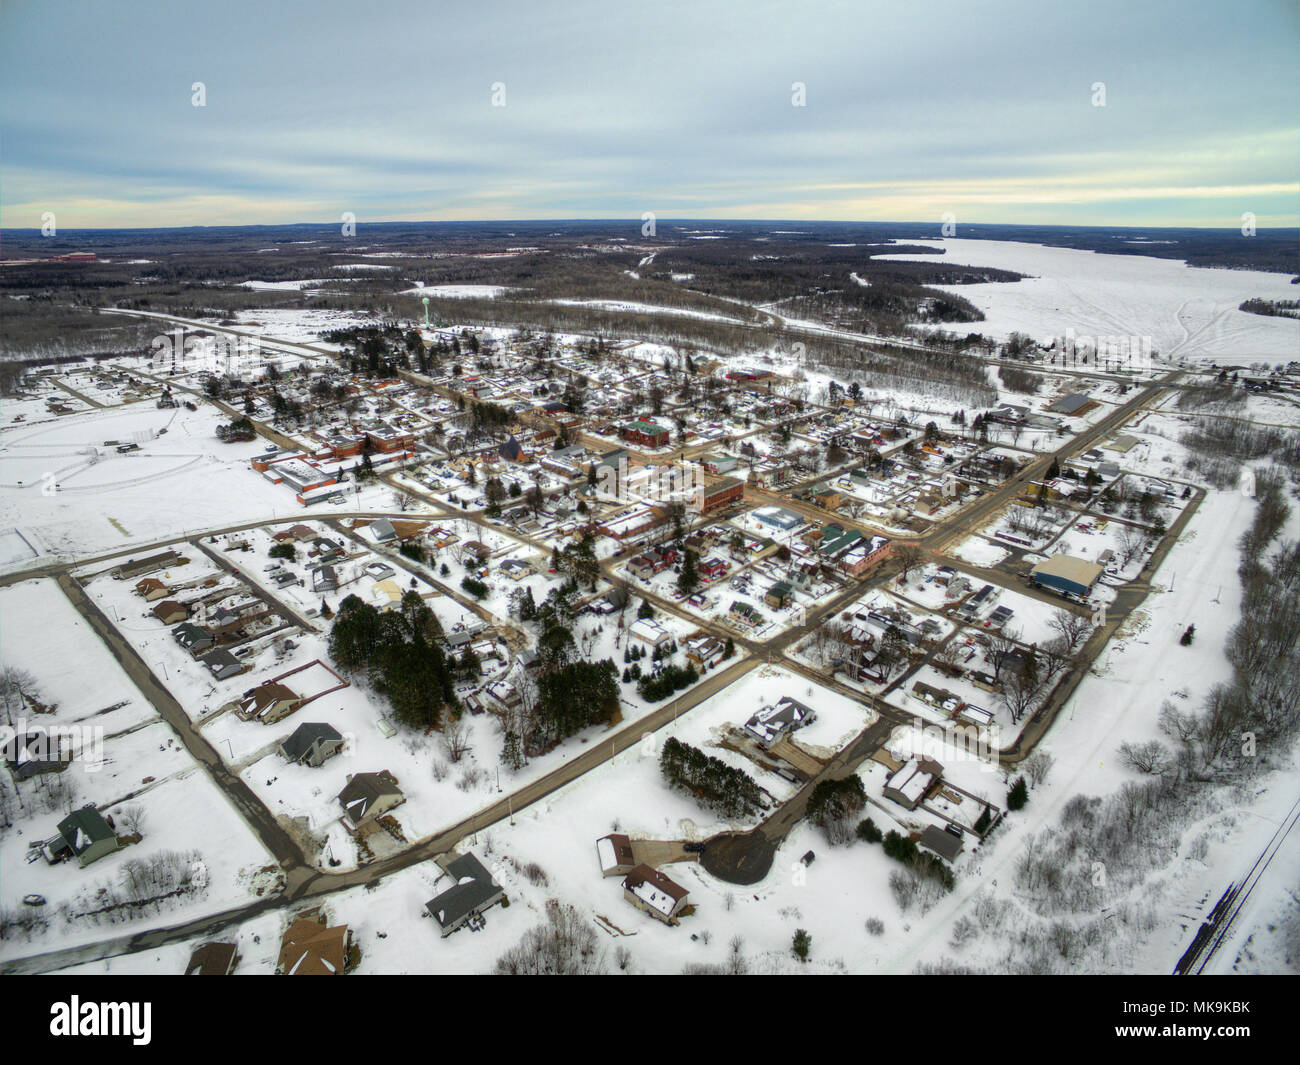 Bovey, Minnesota is a small Community on the Iron Range of Minnesota in Winter - Stock Image